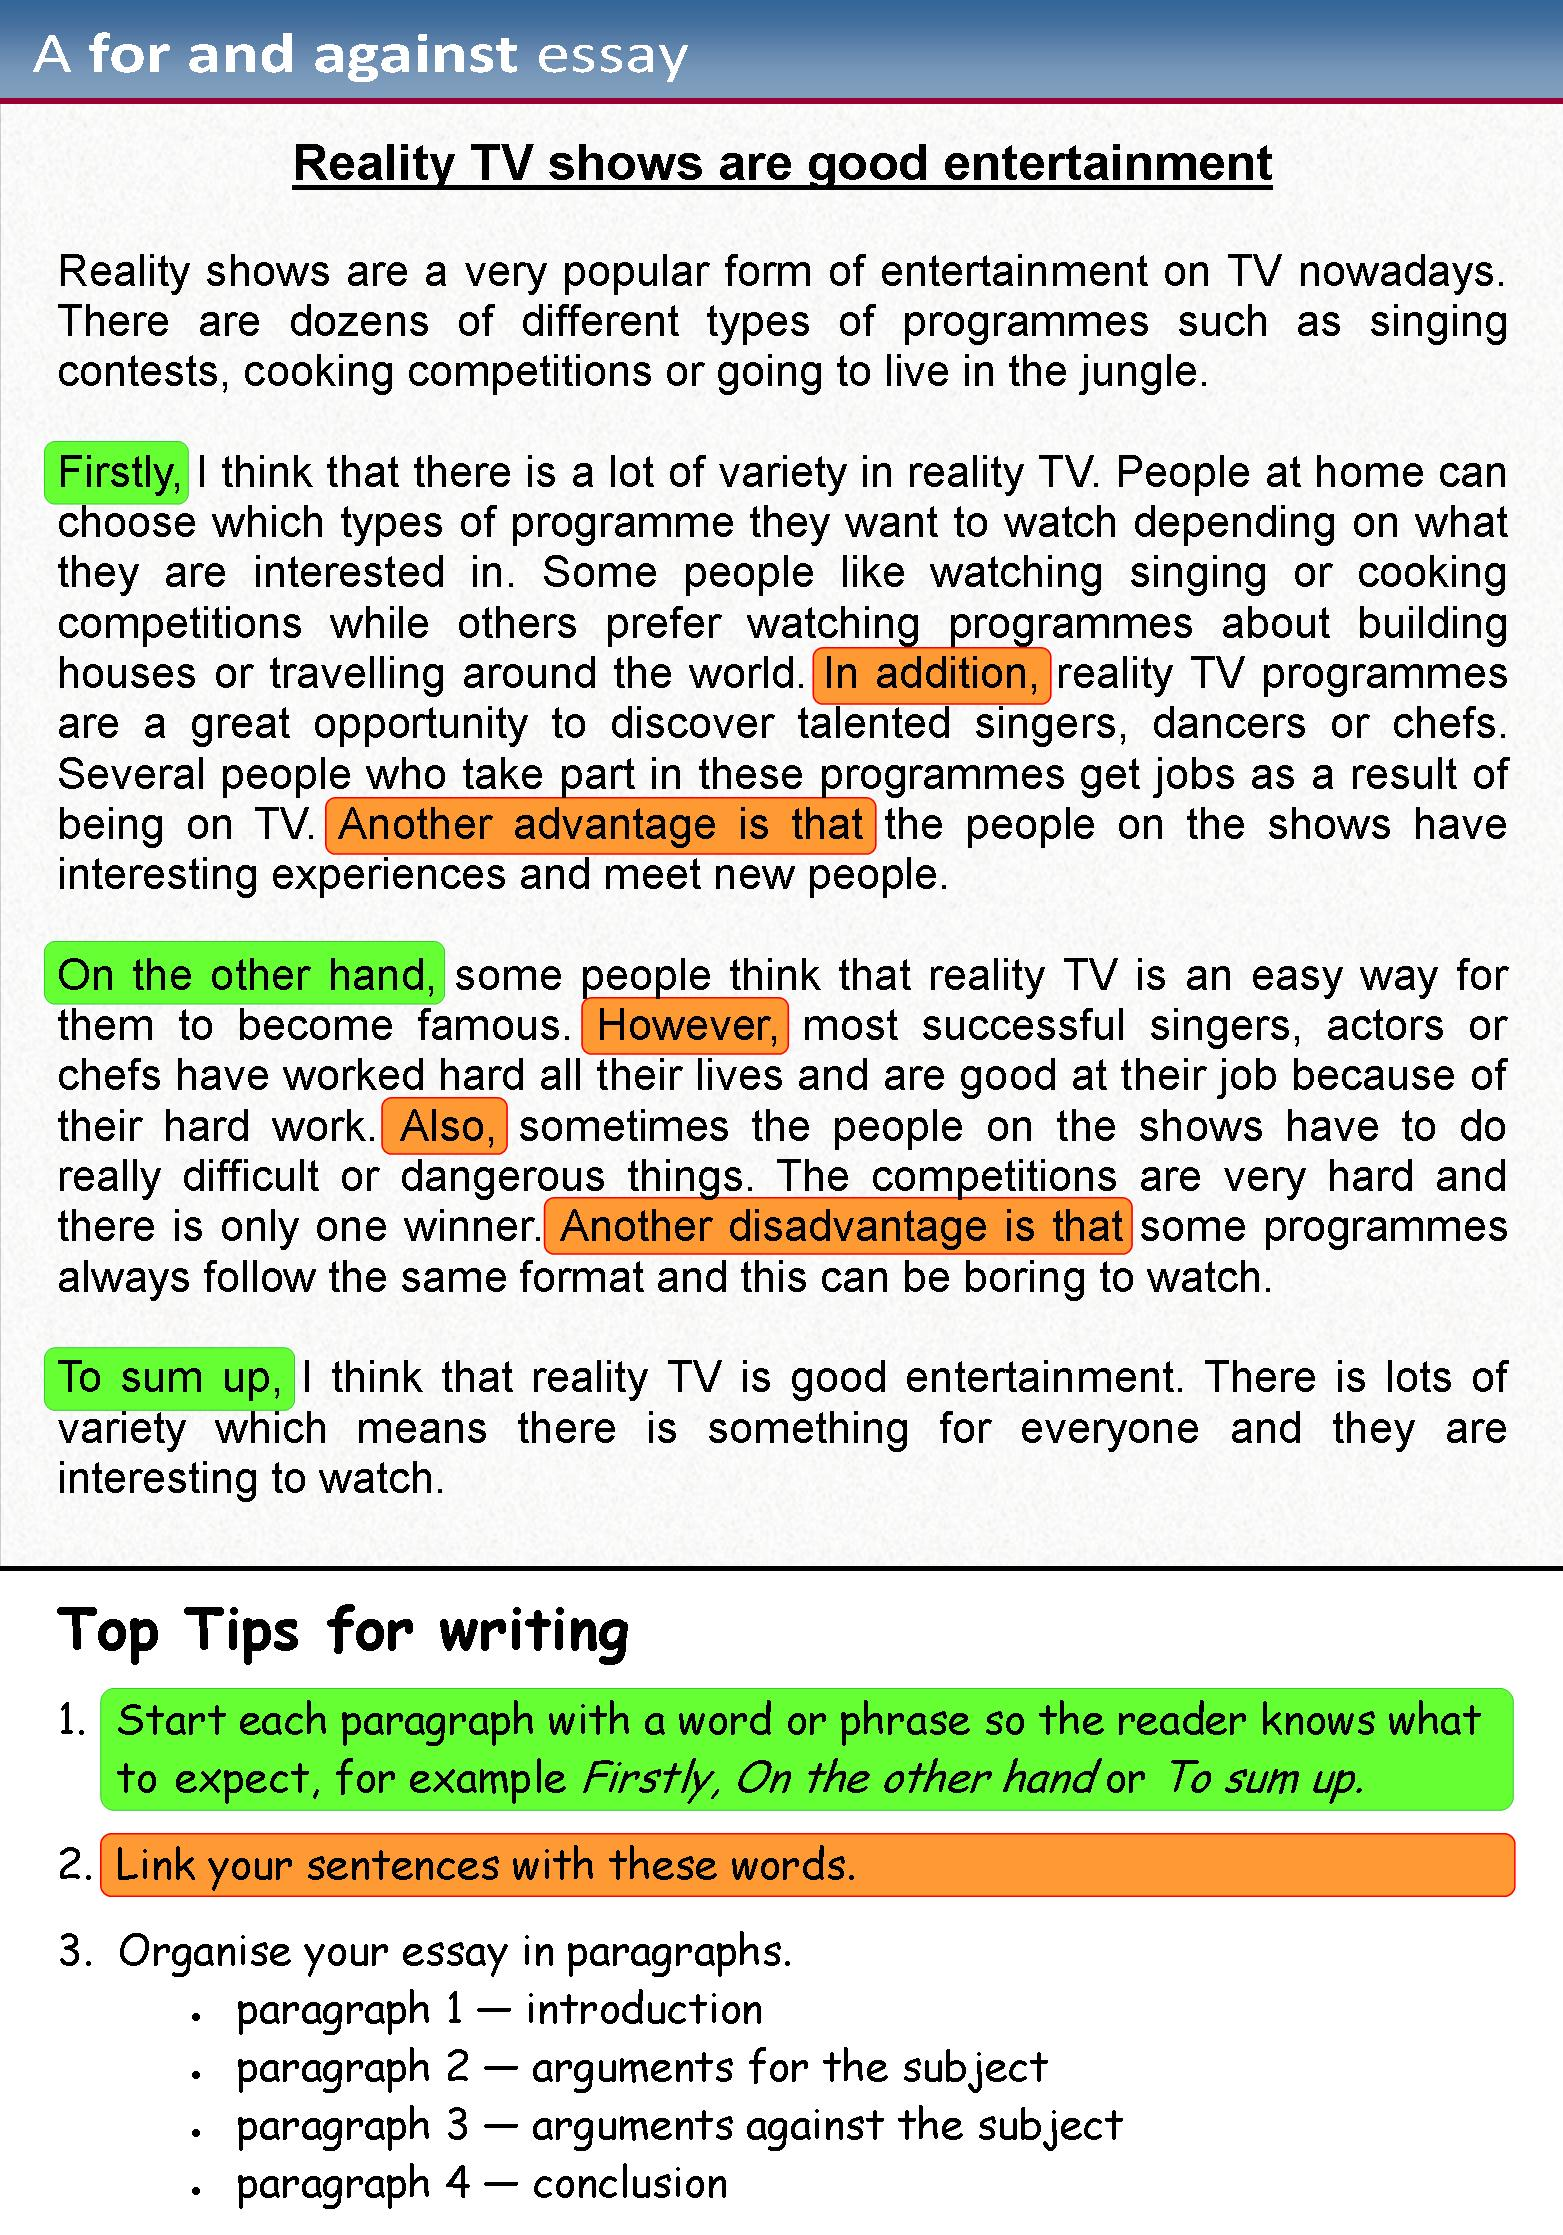 011 For Against Essay 1 Example Paragraph Sensational 3 Kids Full